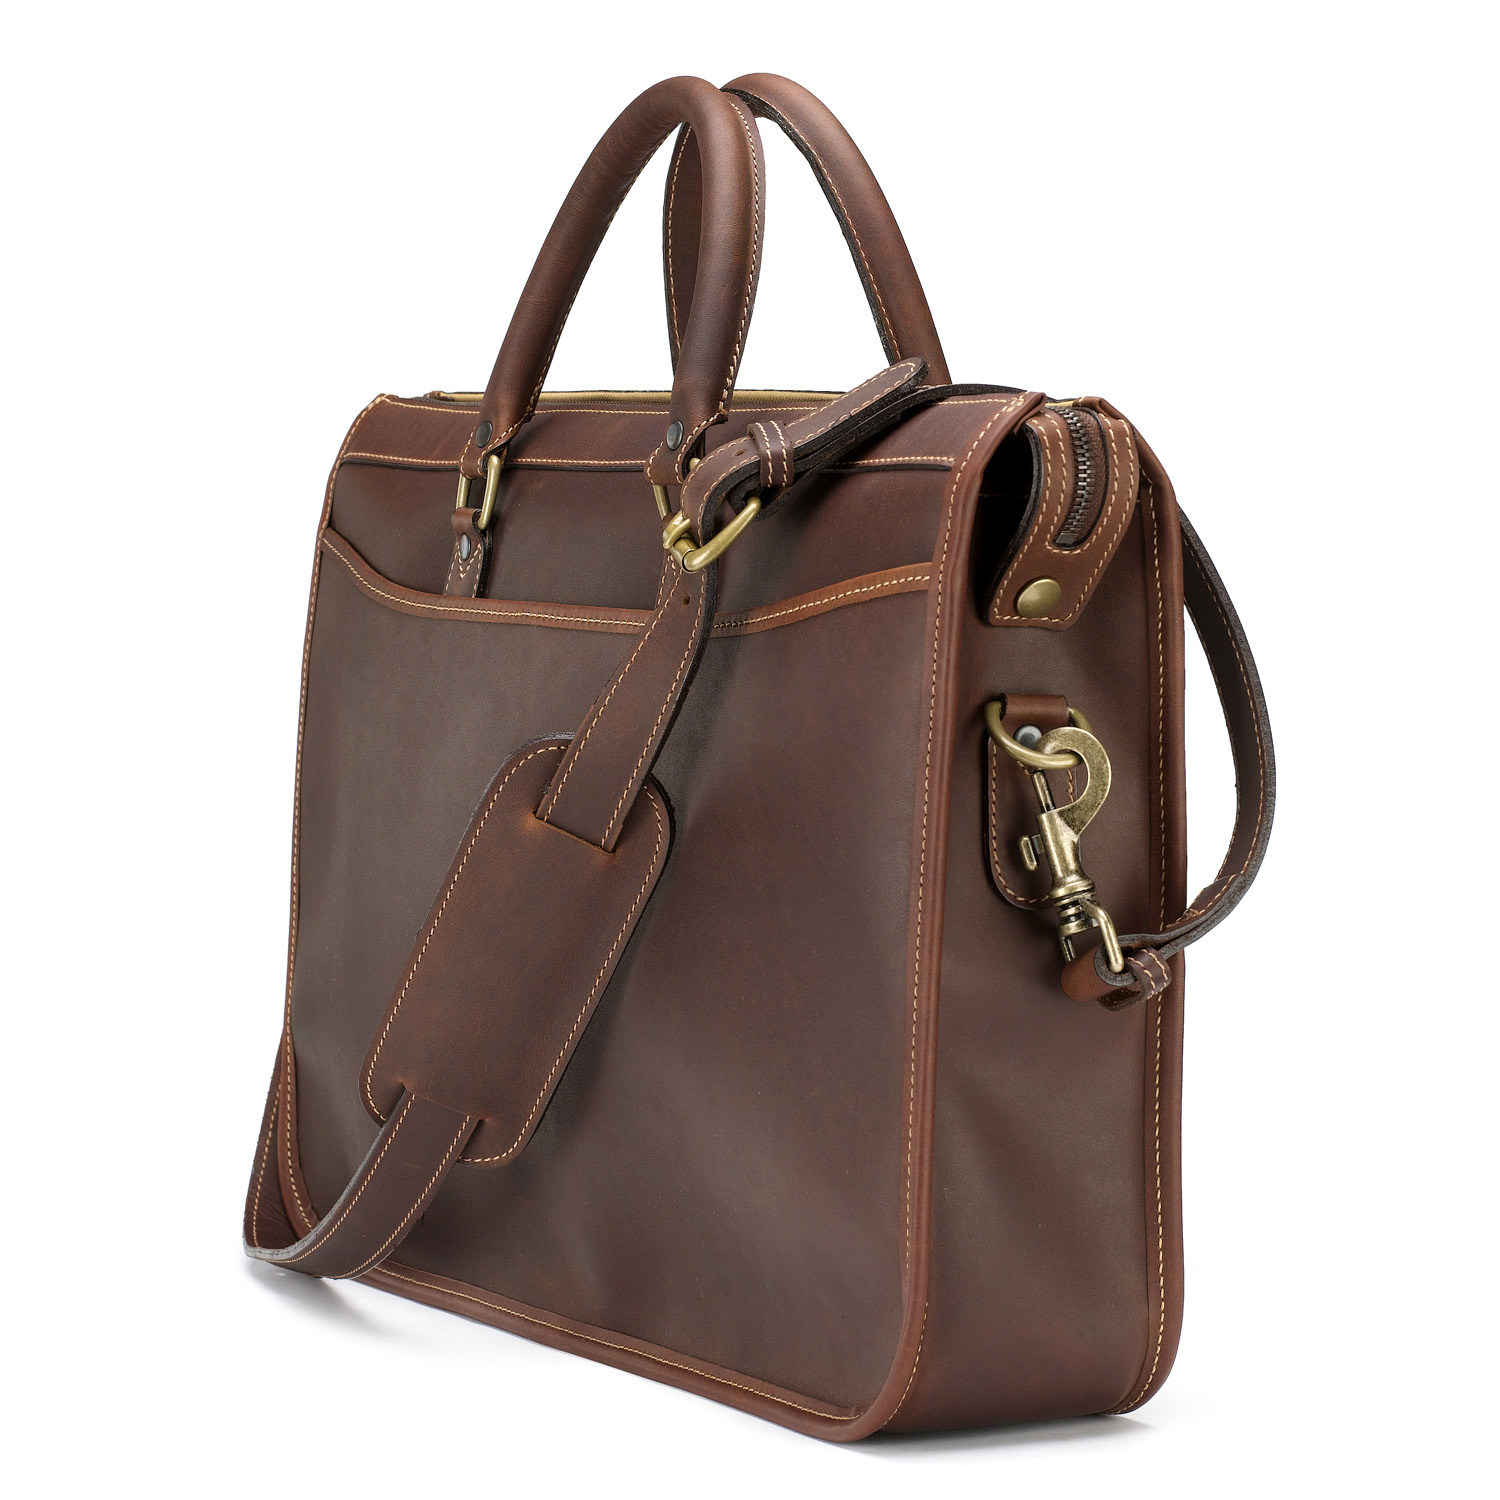 Tusting Marston Leather Briefcase in Sundance Floodlight Leather